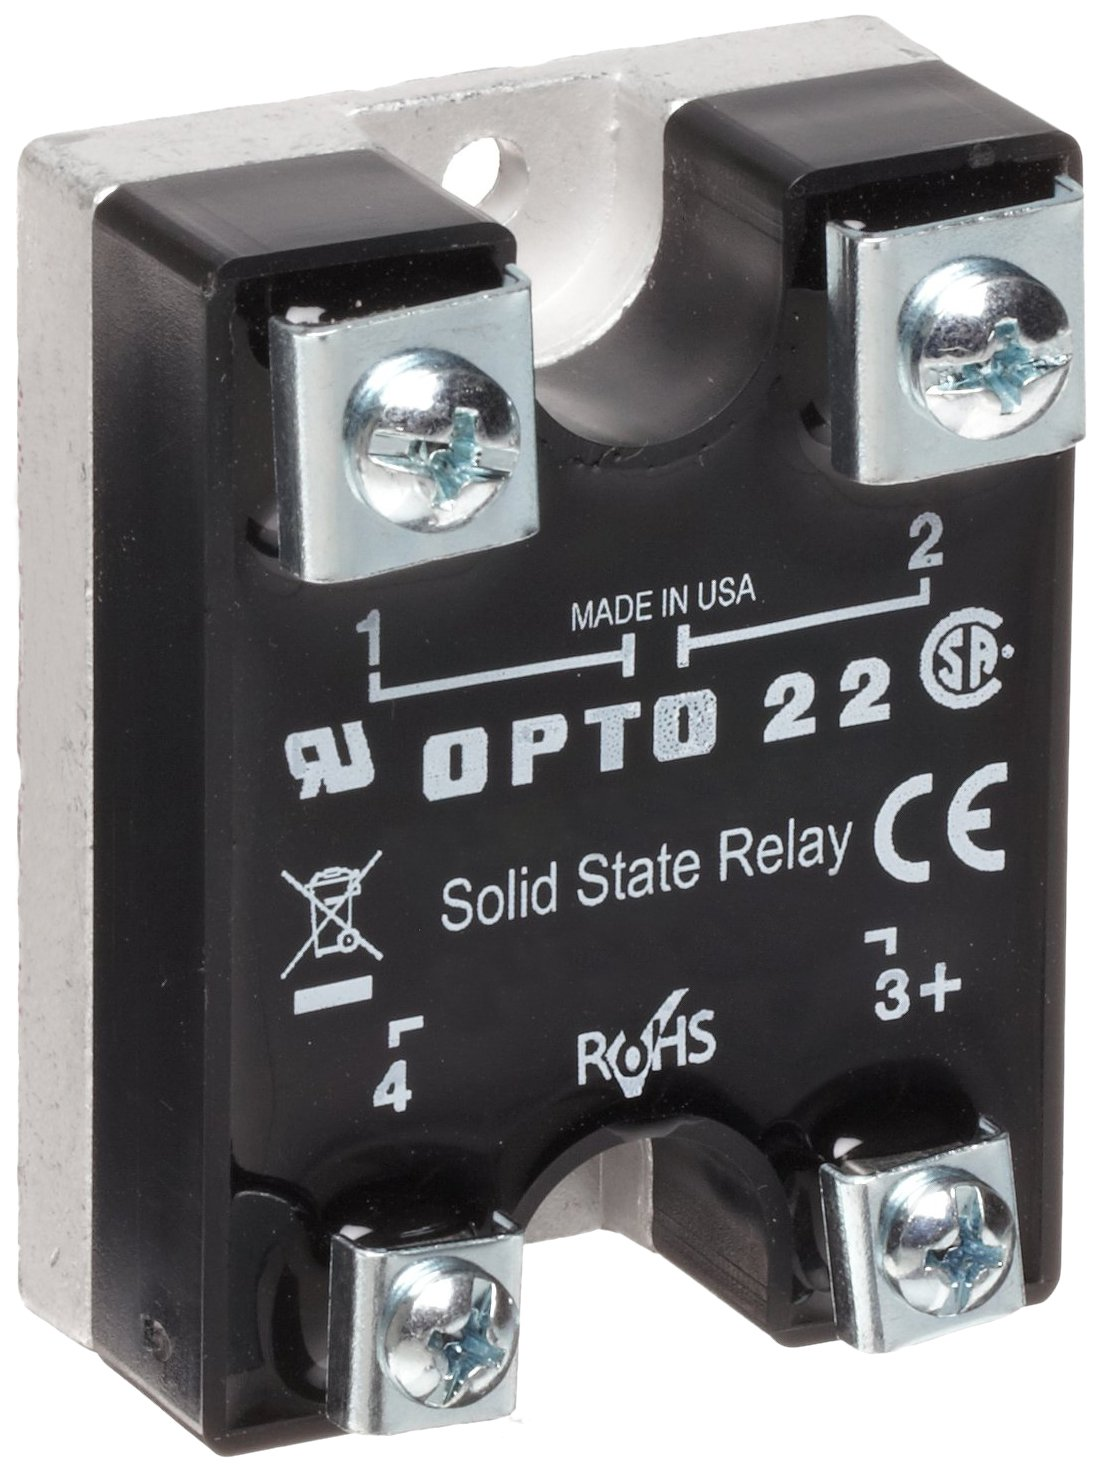 Opto 22 240D45 DC Control Solid State Relay, 240 VAC, 45 Amp, 4000 V  Optical Isolation, 1/2 Cycle Maximum Turn-On/Off Time, 25-65 Hz Operating  Frequency: ...